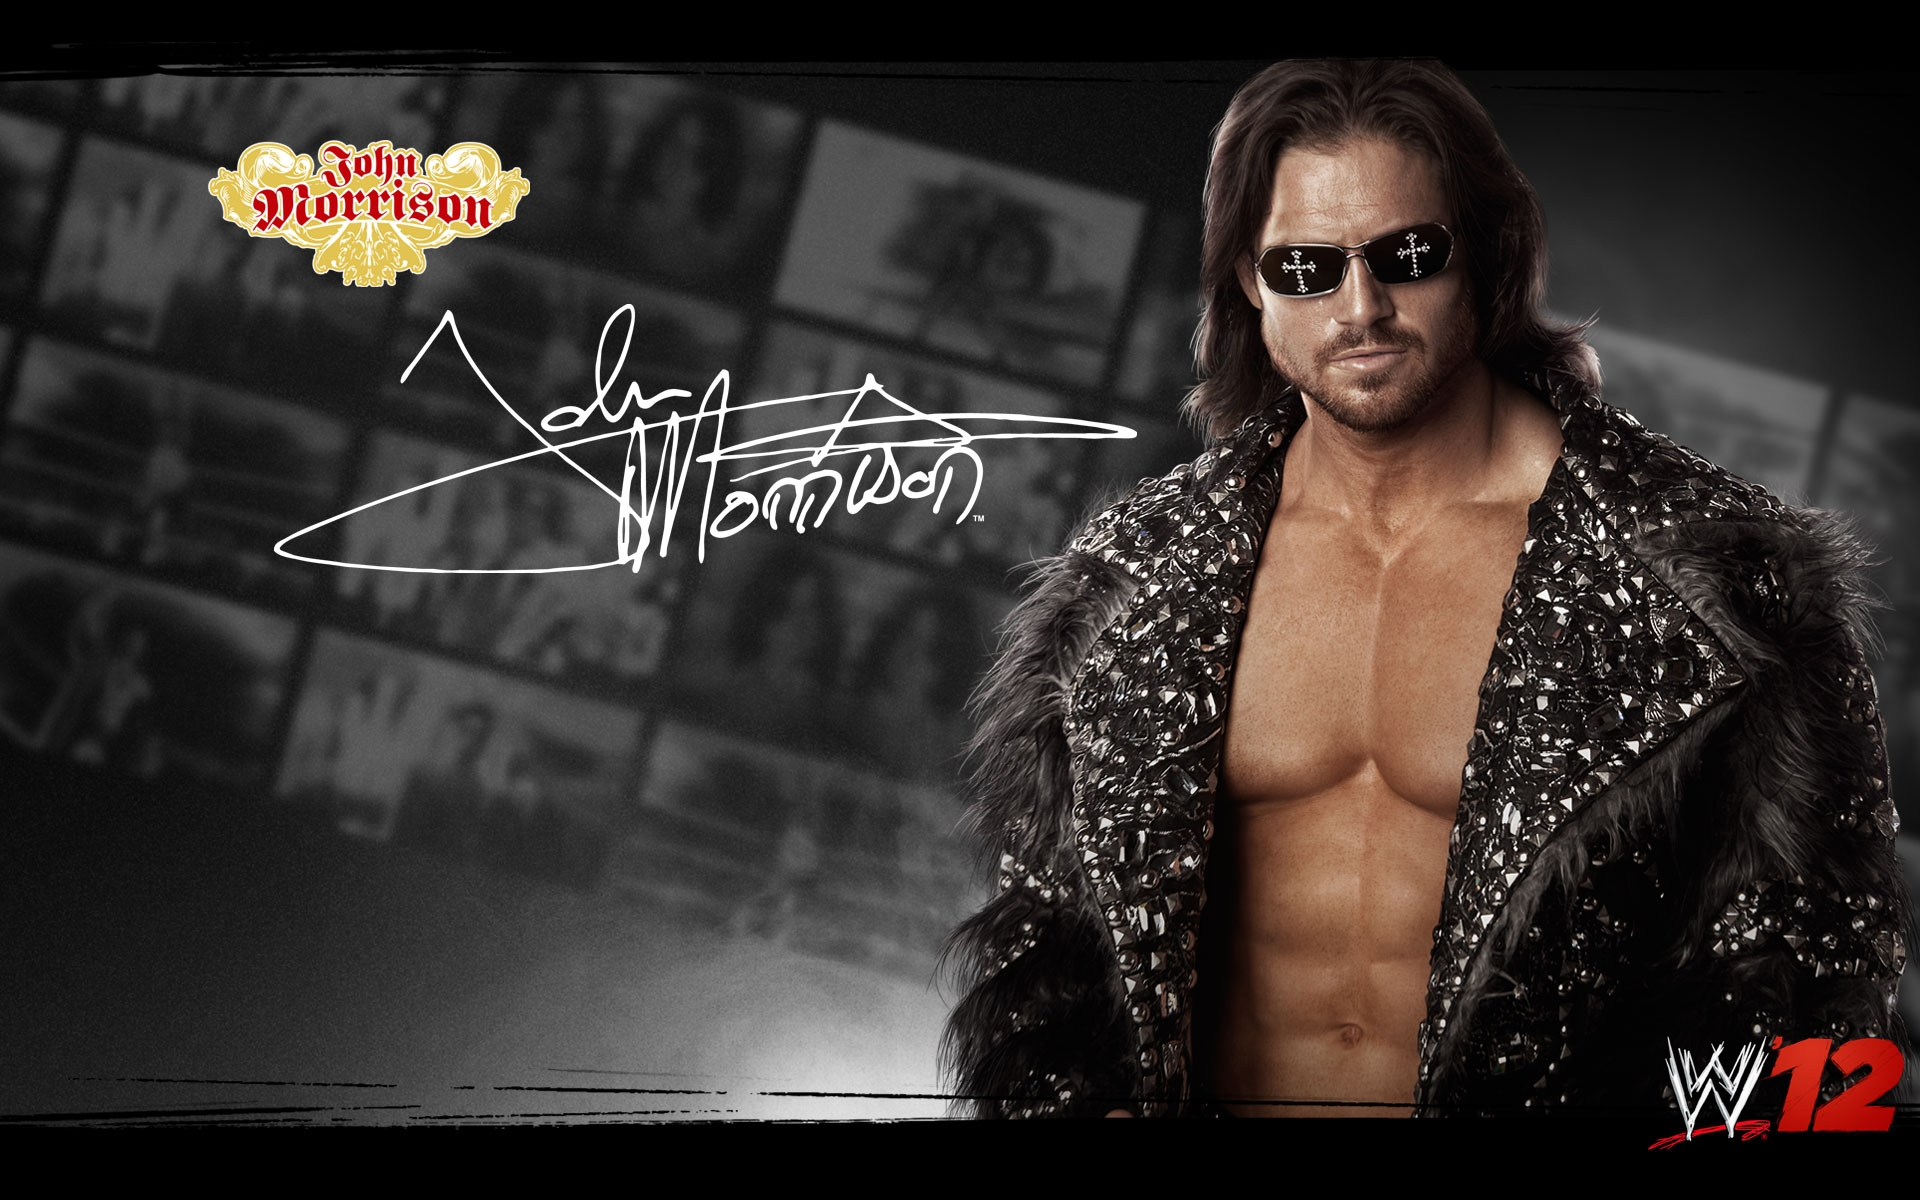 john morrison wwe wrestling hd wallpaper